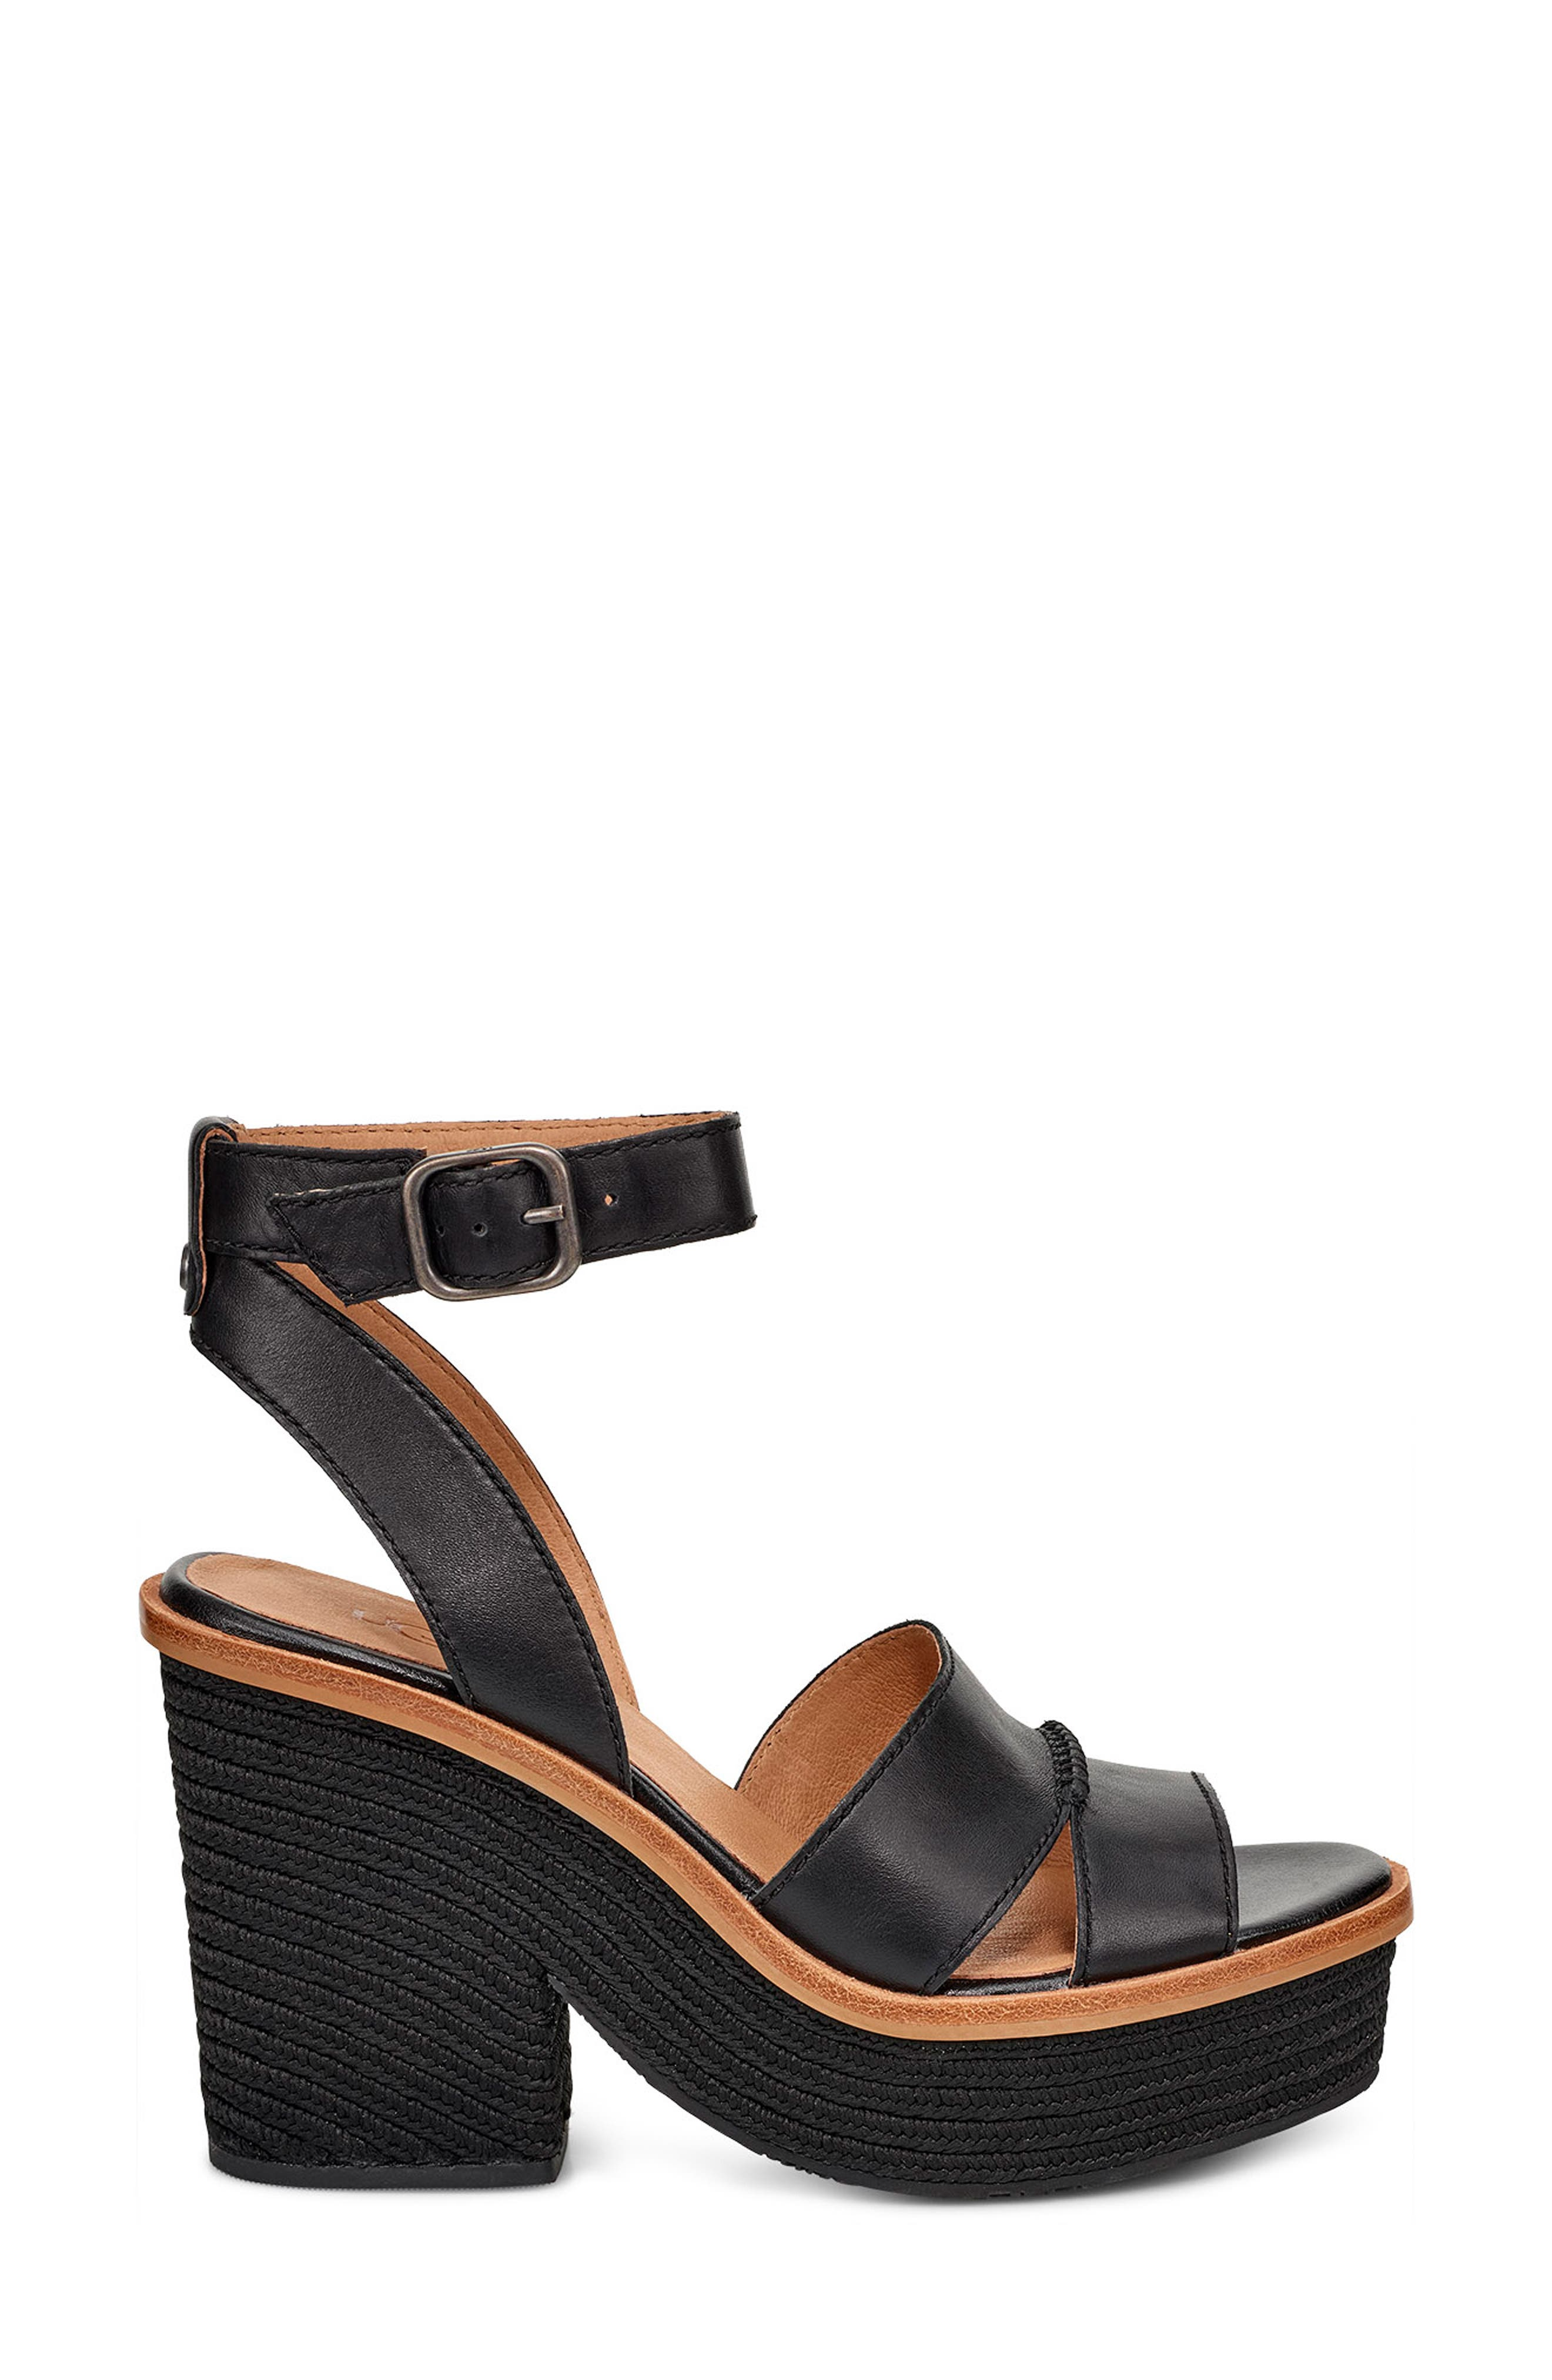 Carine Platform Sandal,                             Alternate thumbnail 3, color,                             BLACK LEATHER